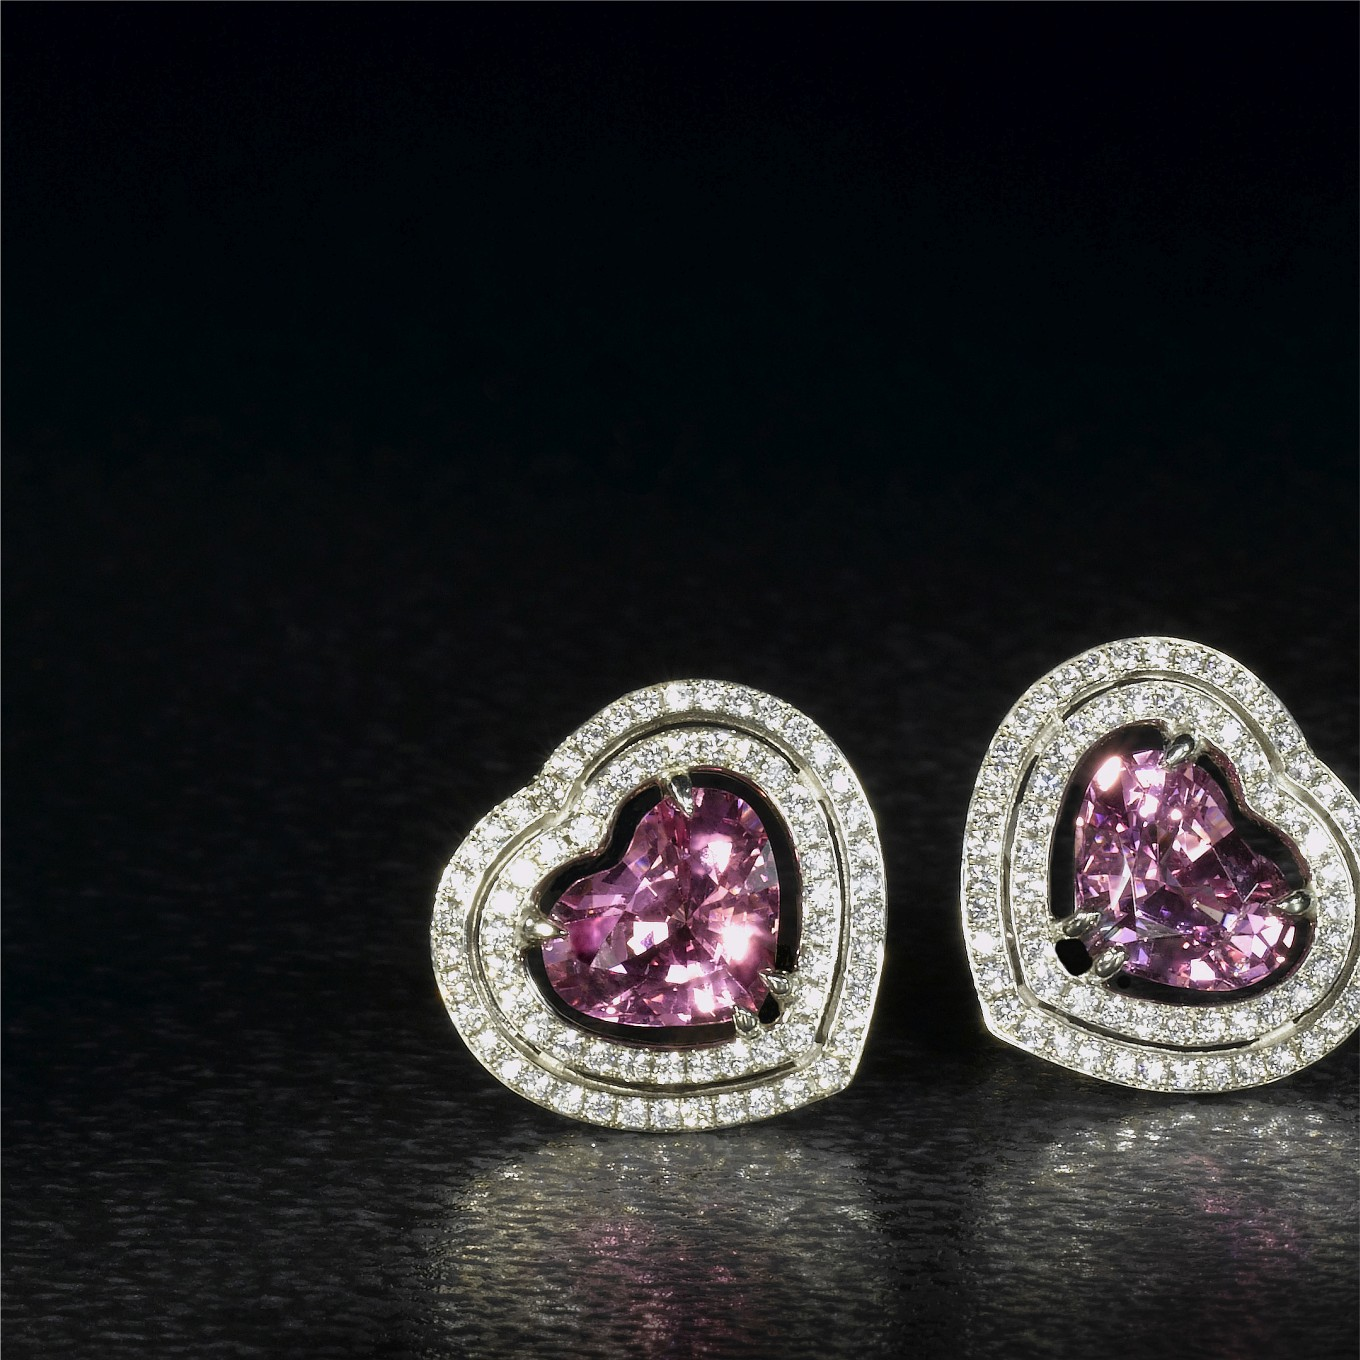 PINK SPINEL & DIAMOND EARRINGS